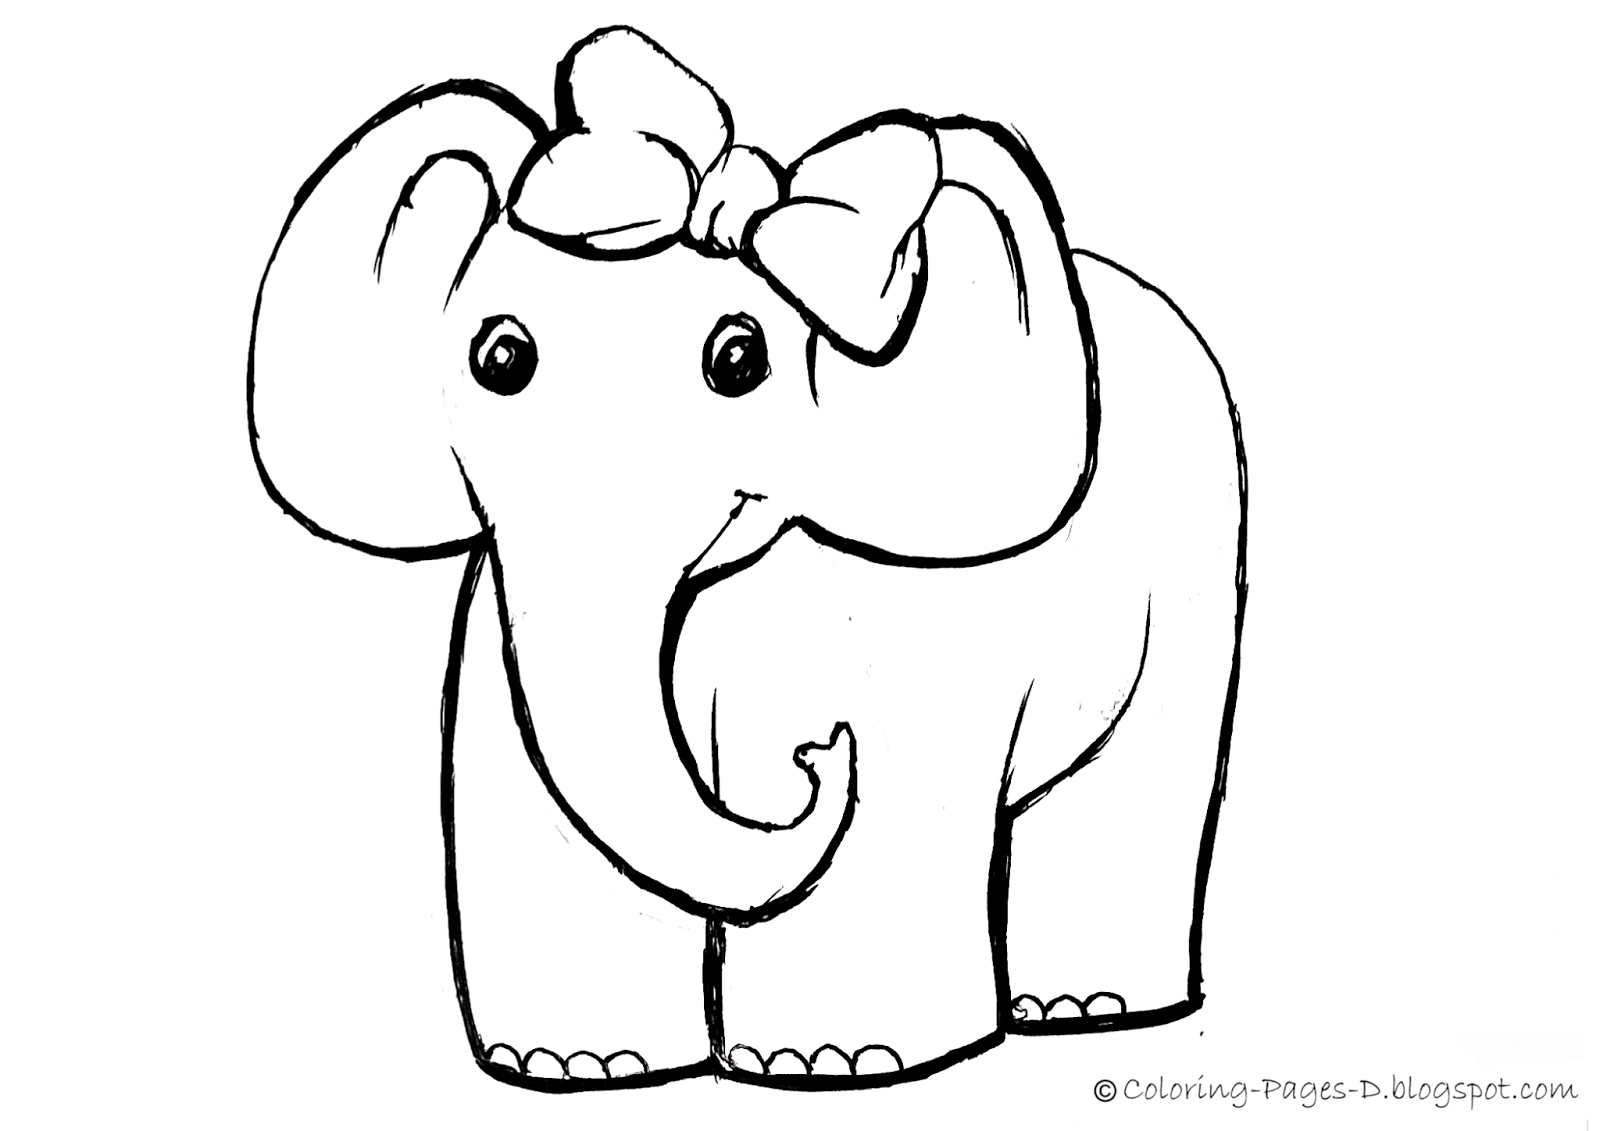 Circus Elephants Colouring Pages